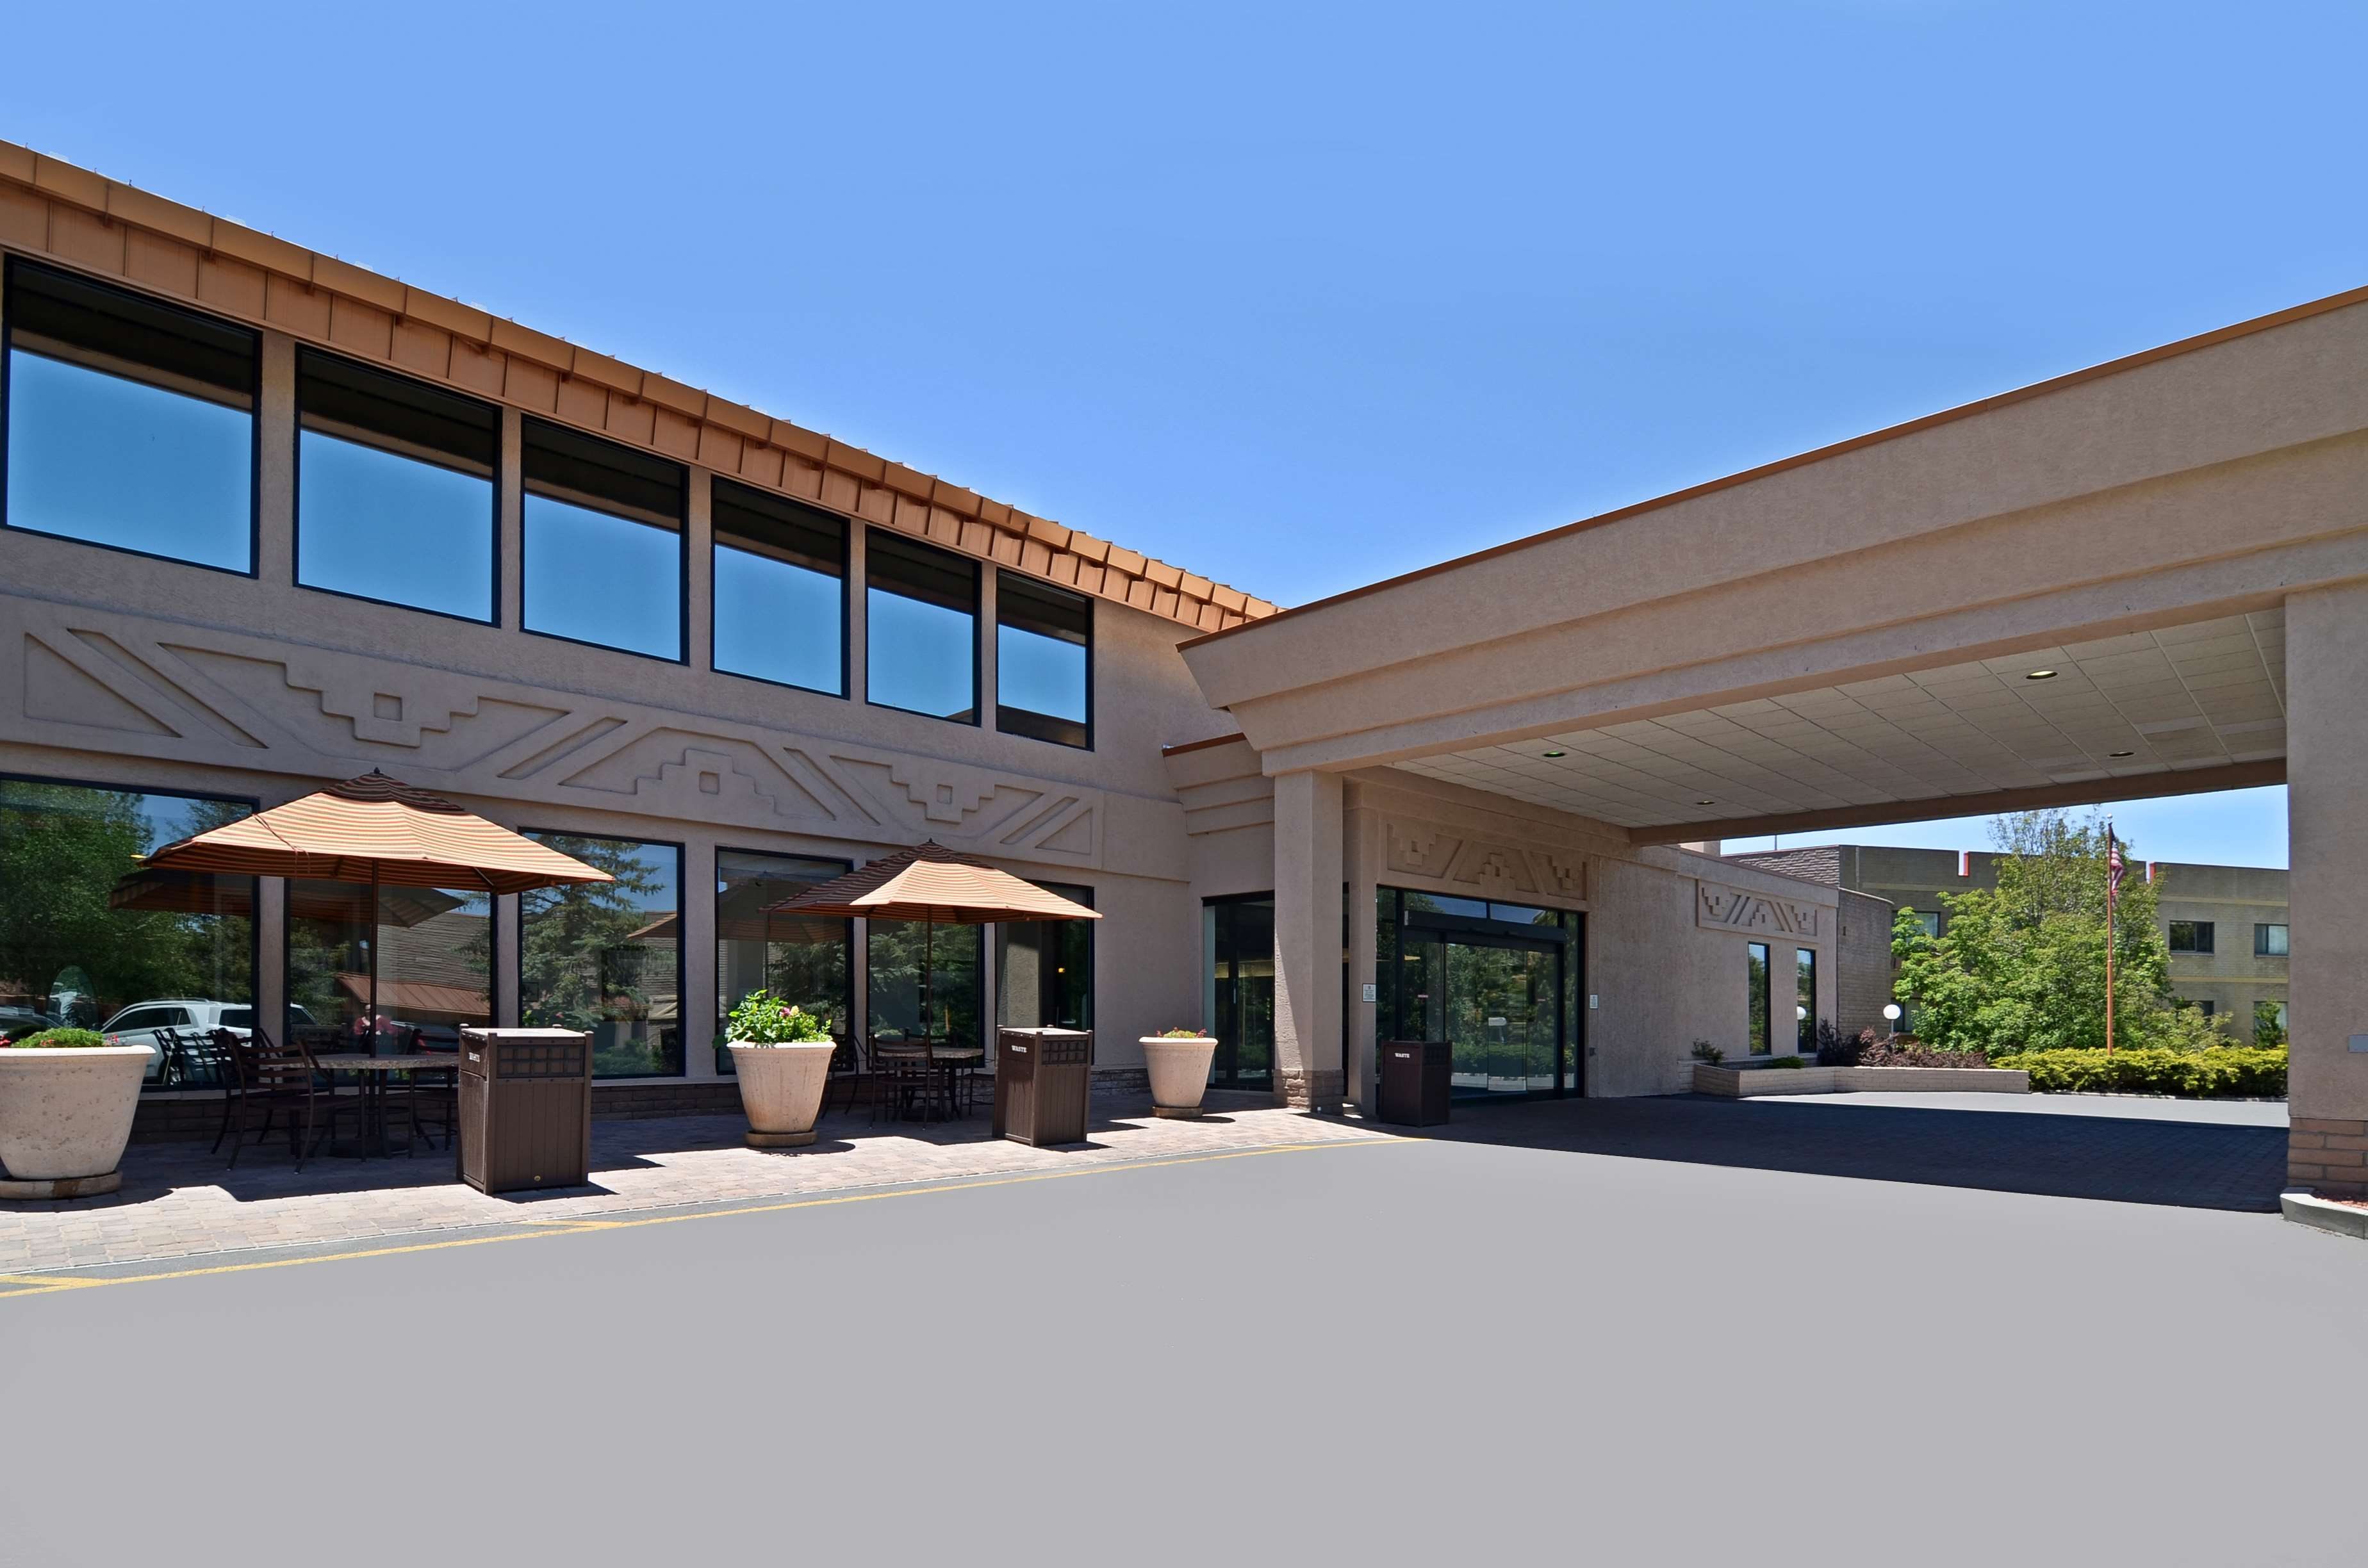 Best Western Premier Grand Canyon Squire Inn image 25